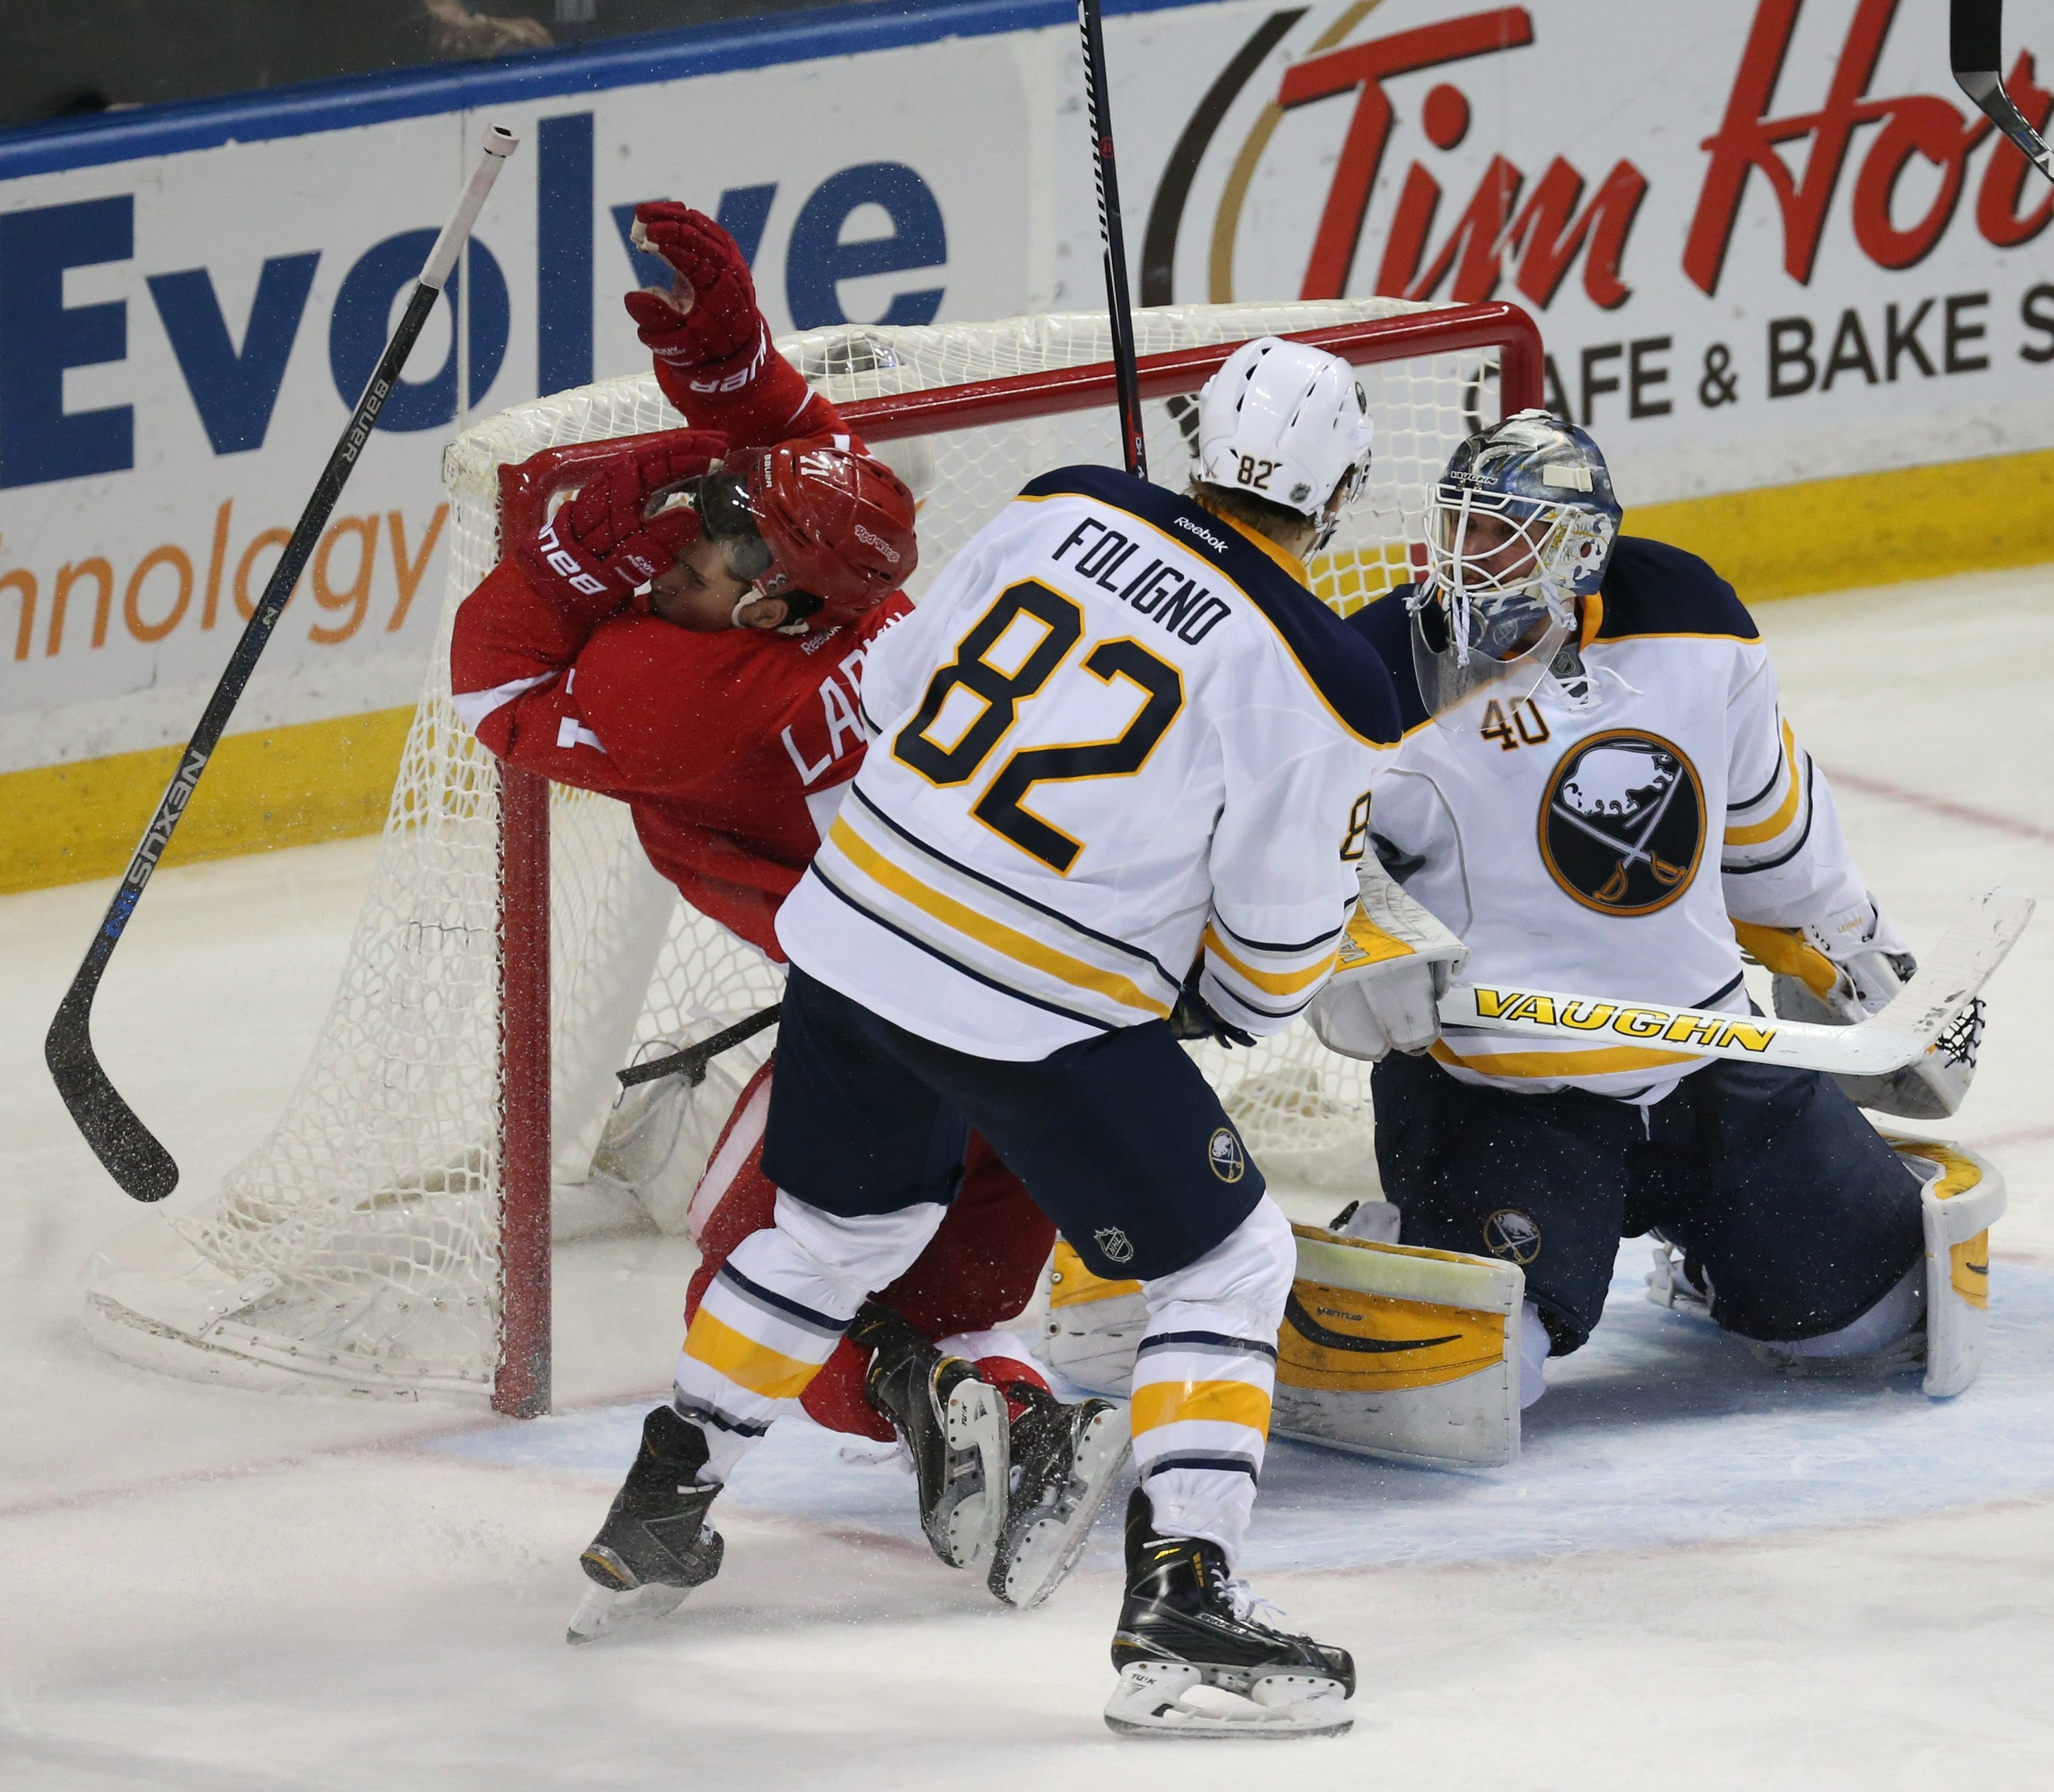 Buffalo Sabres left wing Marcus Foligno received a four-minute penalty for high sticking and slamming Detroit Red Wings center Dylan Larkin into the net.